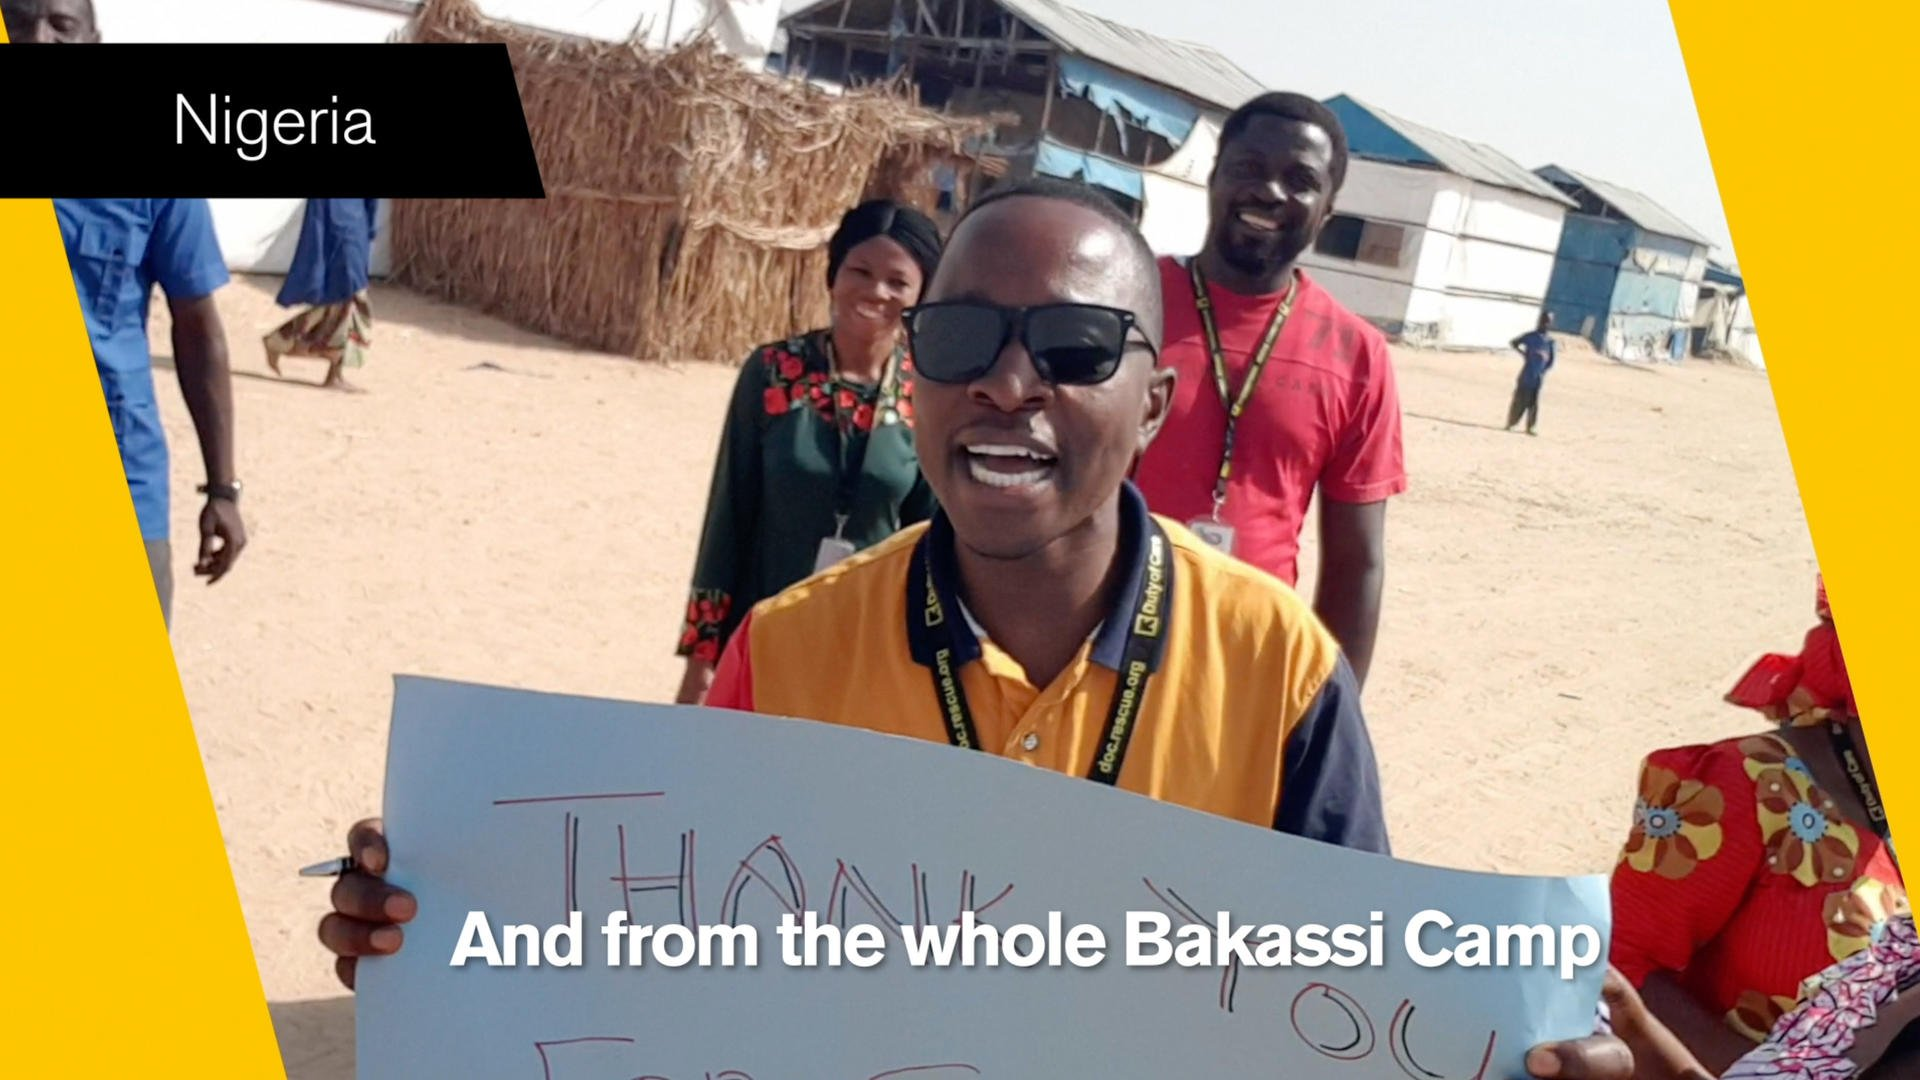 An IRC aid worker in Nigeria holds up a 'thank you' sign in a still from video thanking IRC donors